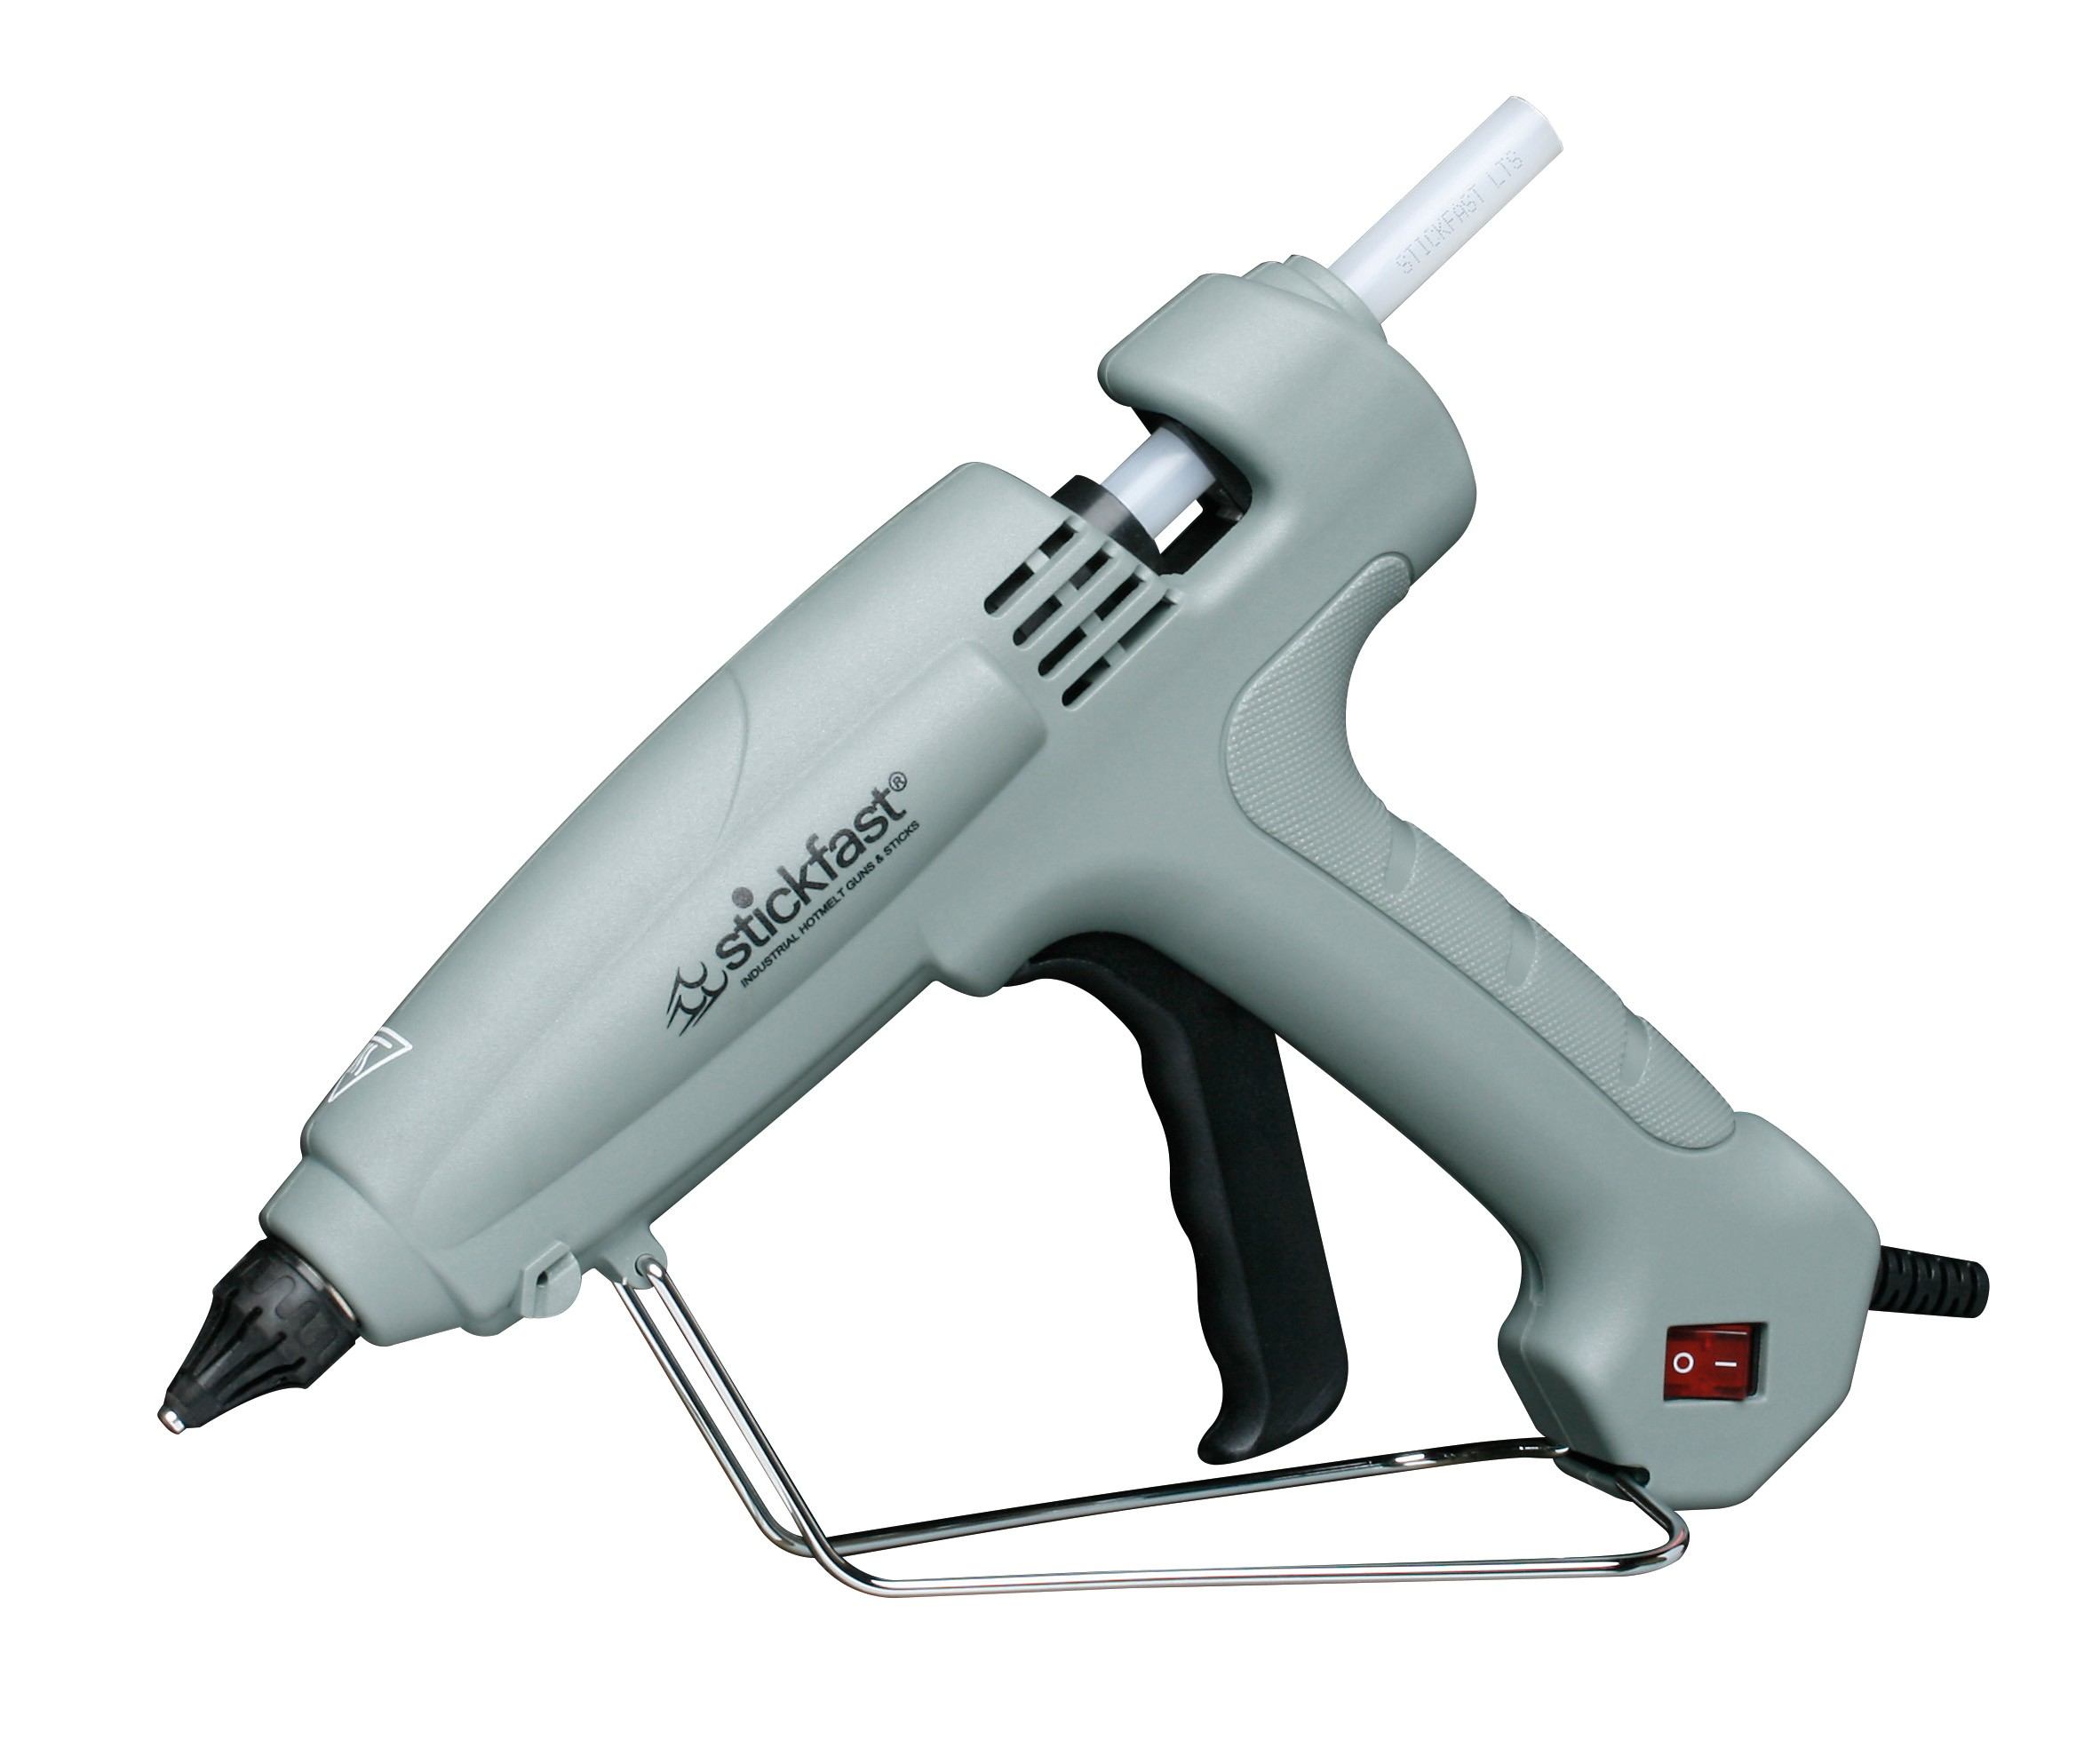 XTEGRA STICKFAST GLUE GUN LIGHT DUTY 12mm GX120